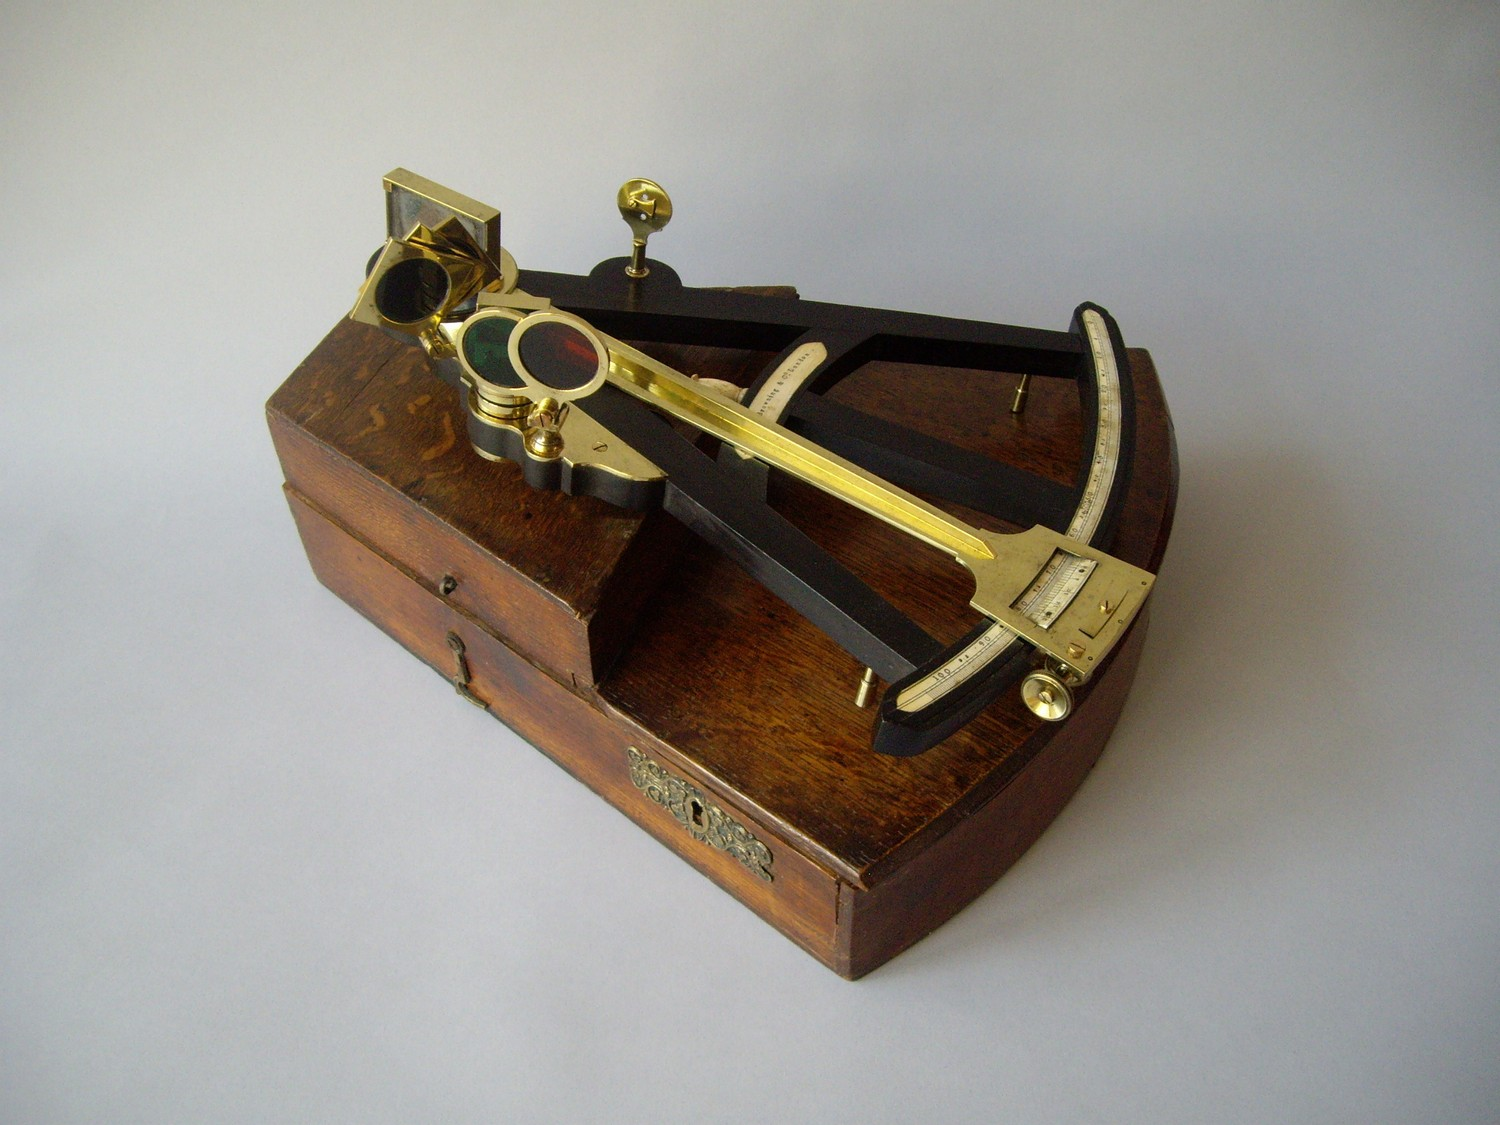 OCTANT IN OAK WOOD CHEST CA. 1820-1840